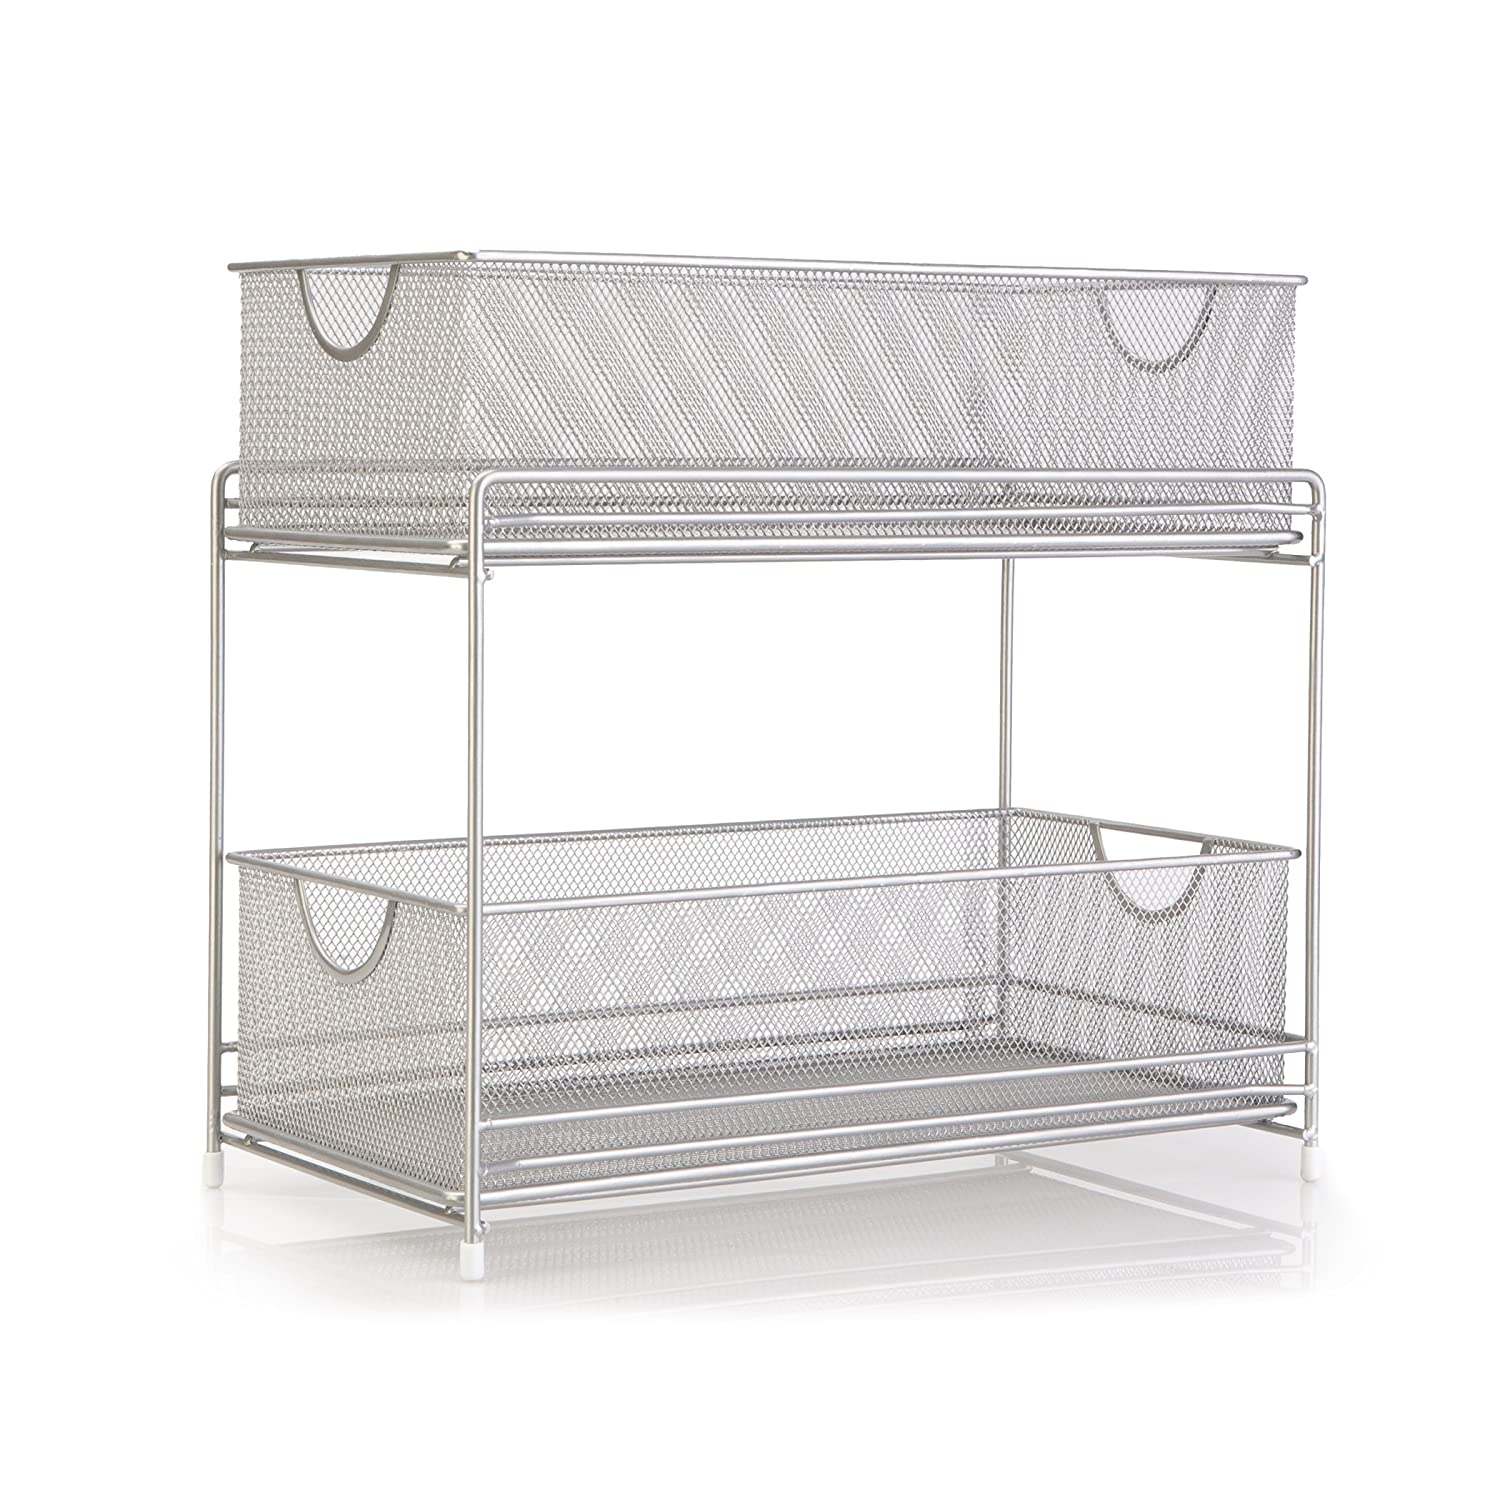 Amazon.com: Grayline 40624 2-Tier Satin Nickel Mesh Organizer ...